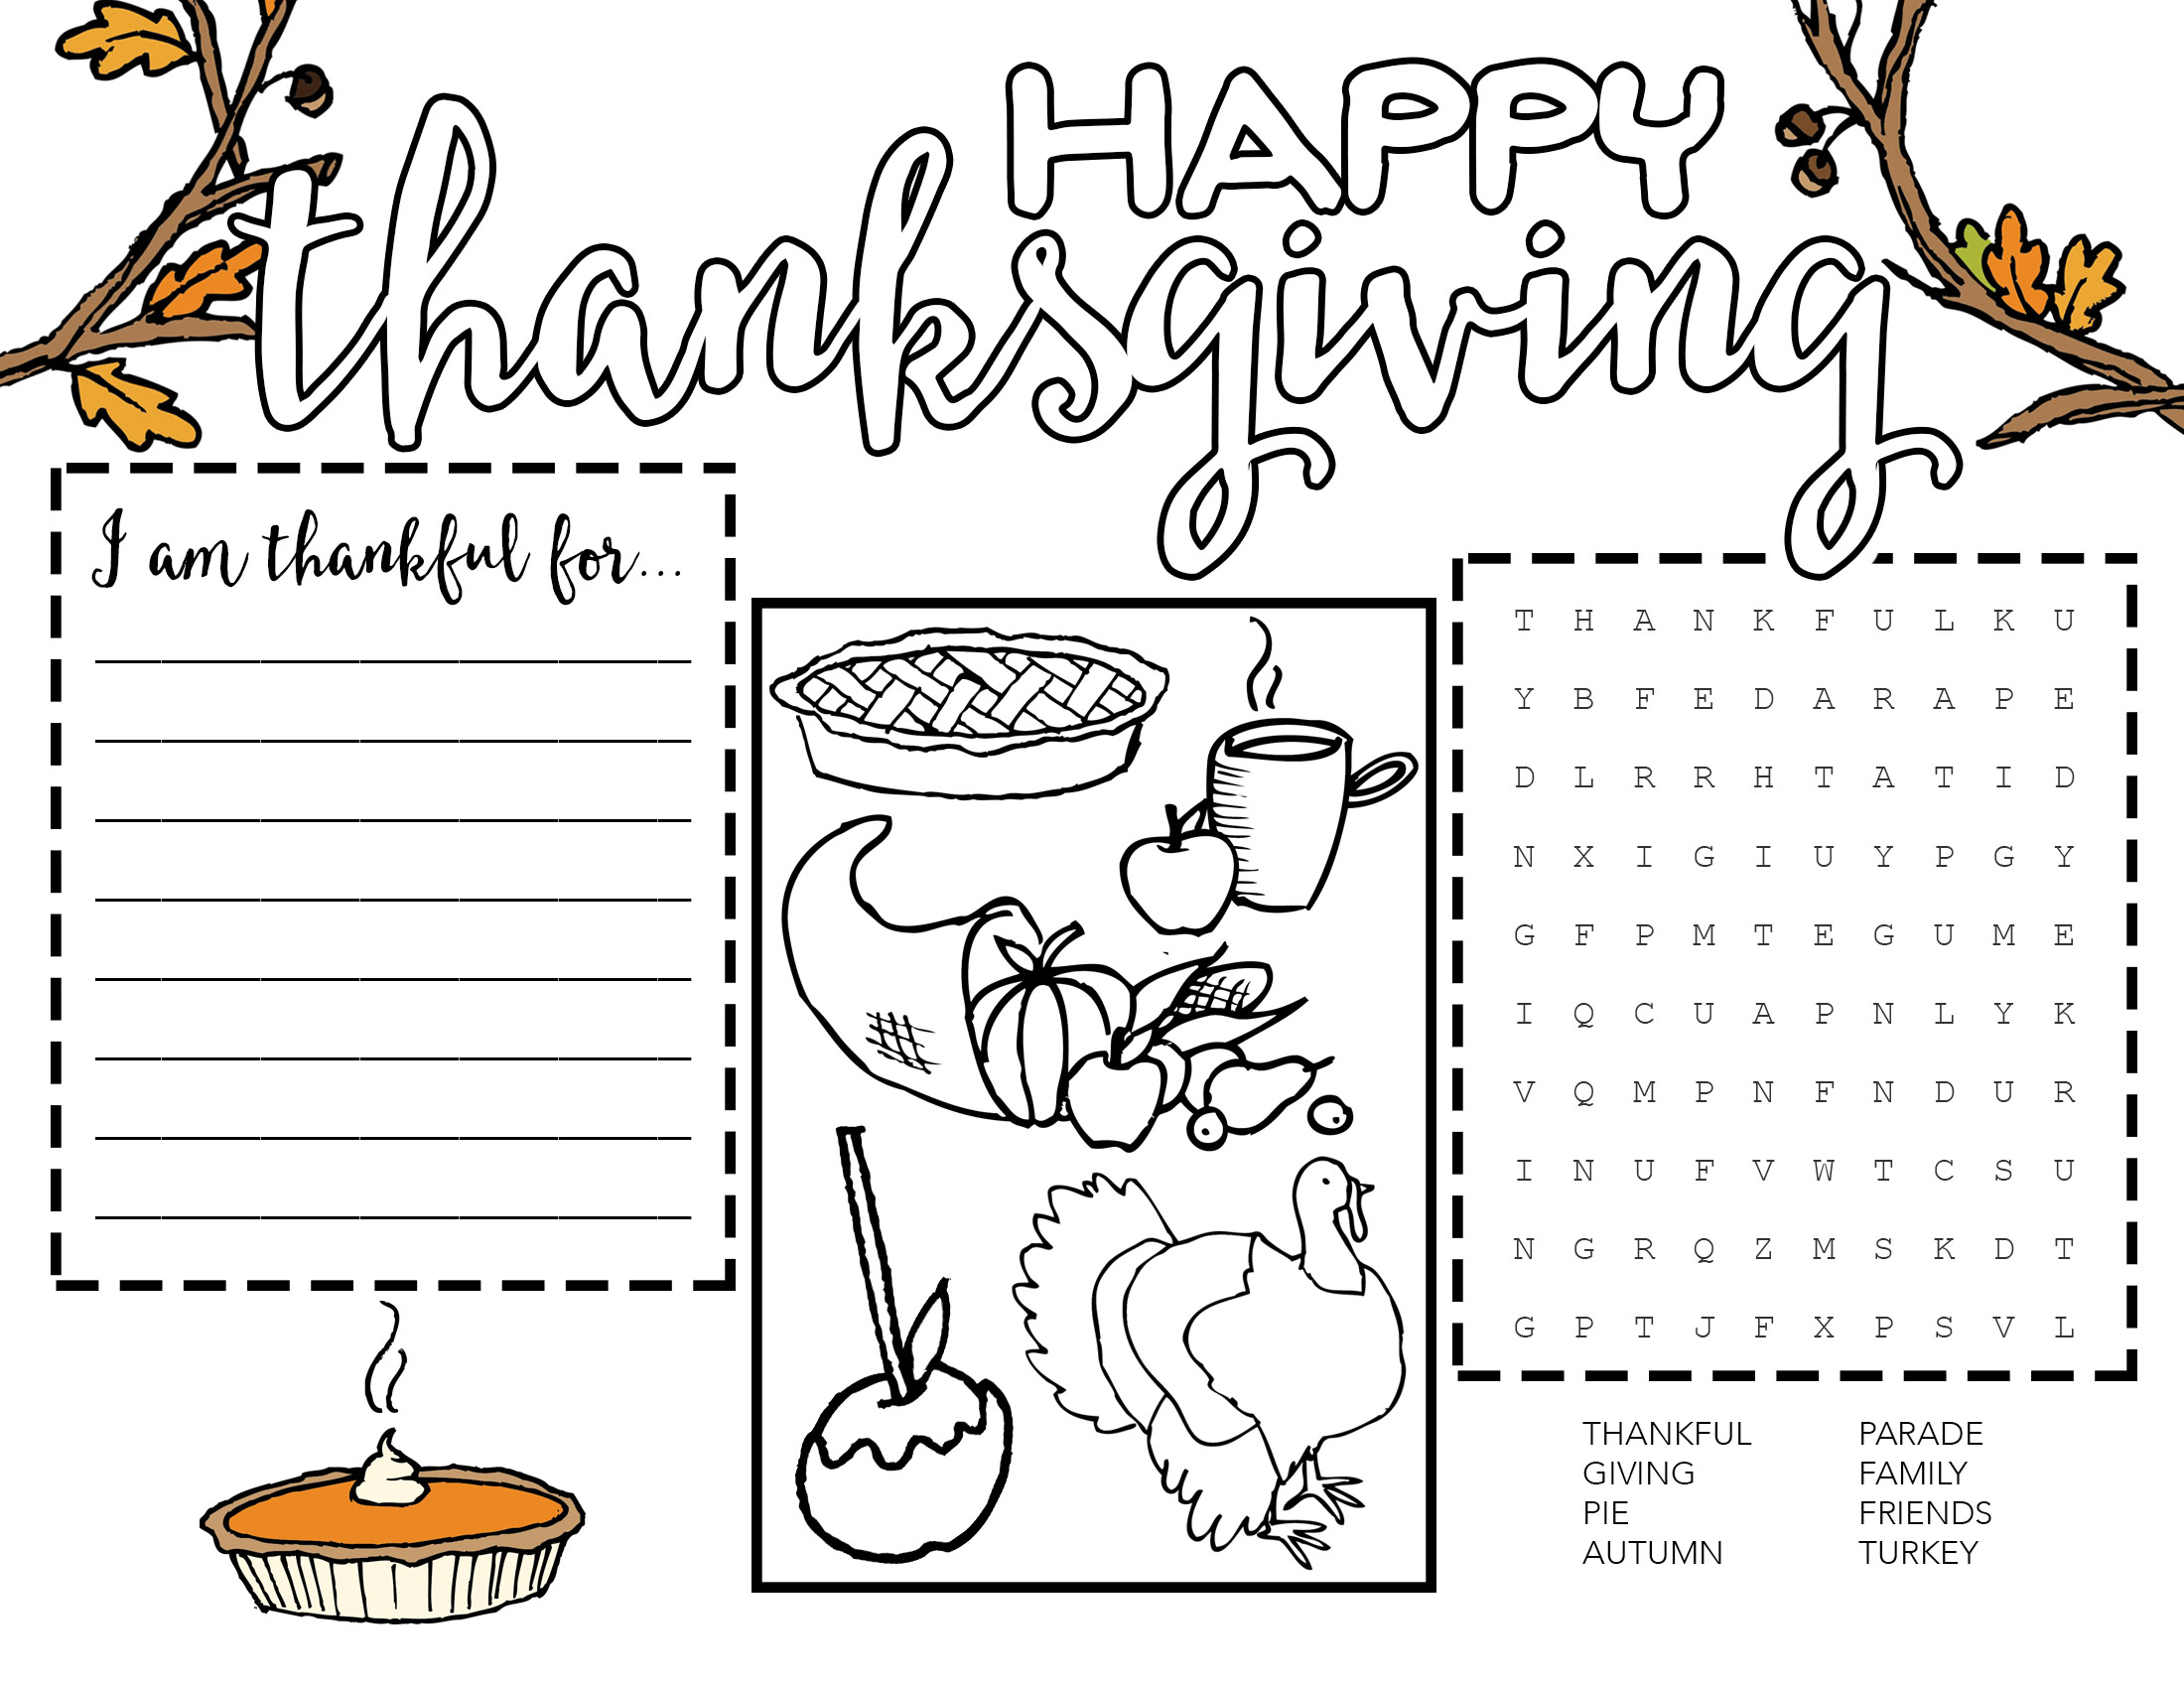 image regarding Free Printable Thanksgiving Placemats known as Absolutely free Printable Thanksgiving Placemat - Our Handcrafted Lifetime